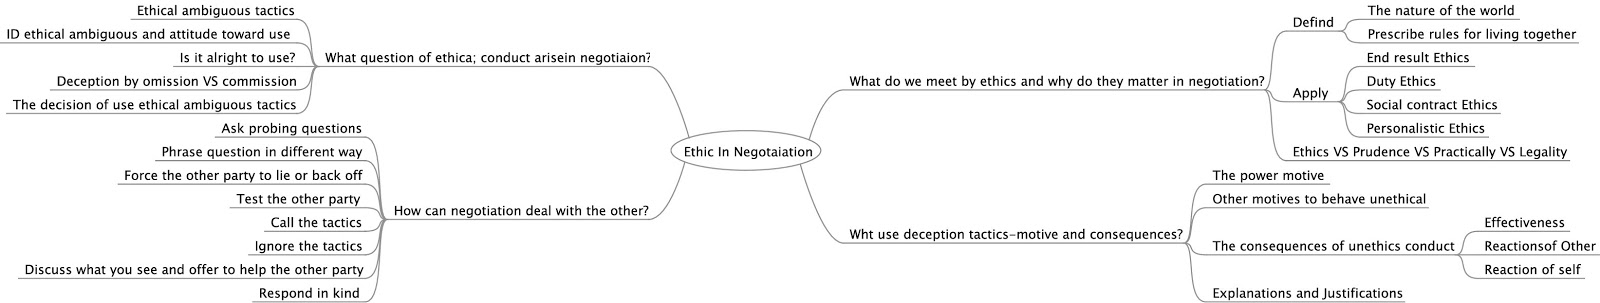 end result ethics in negotiation